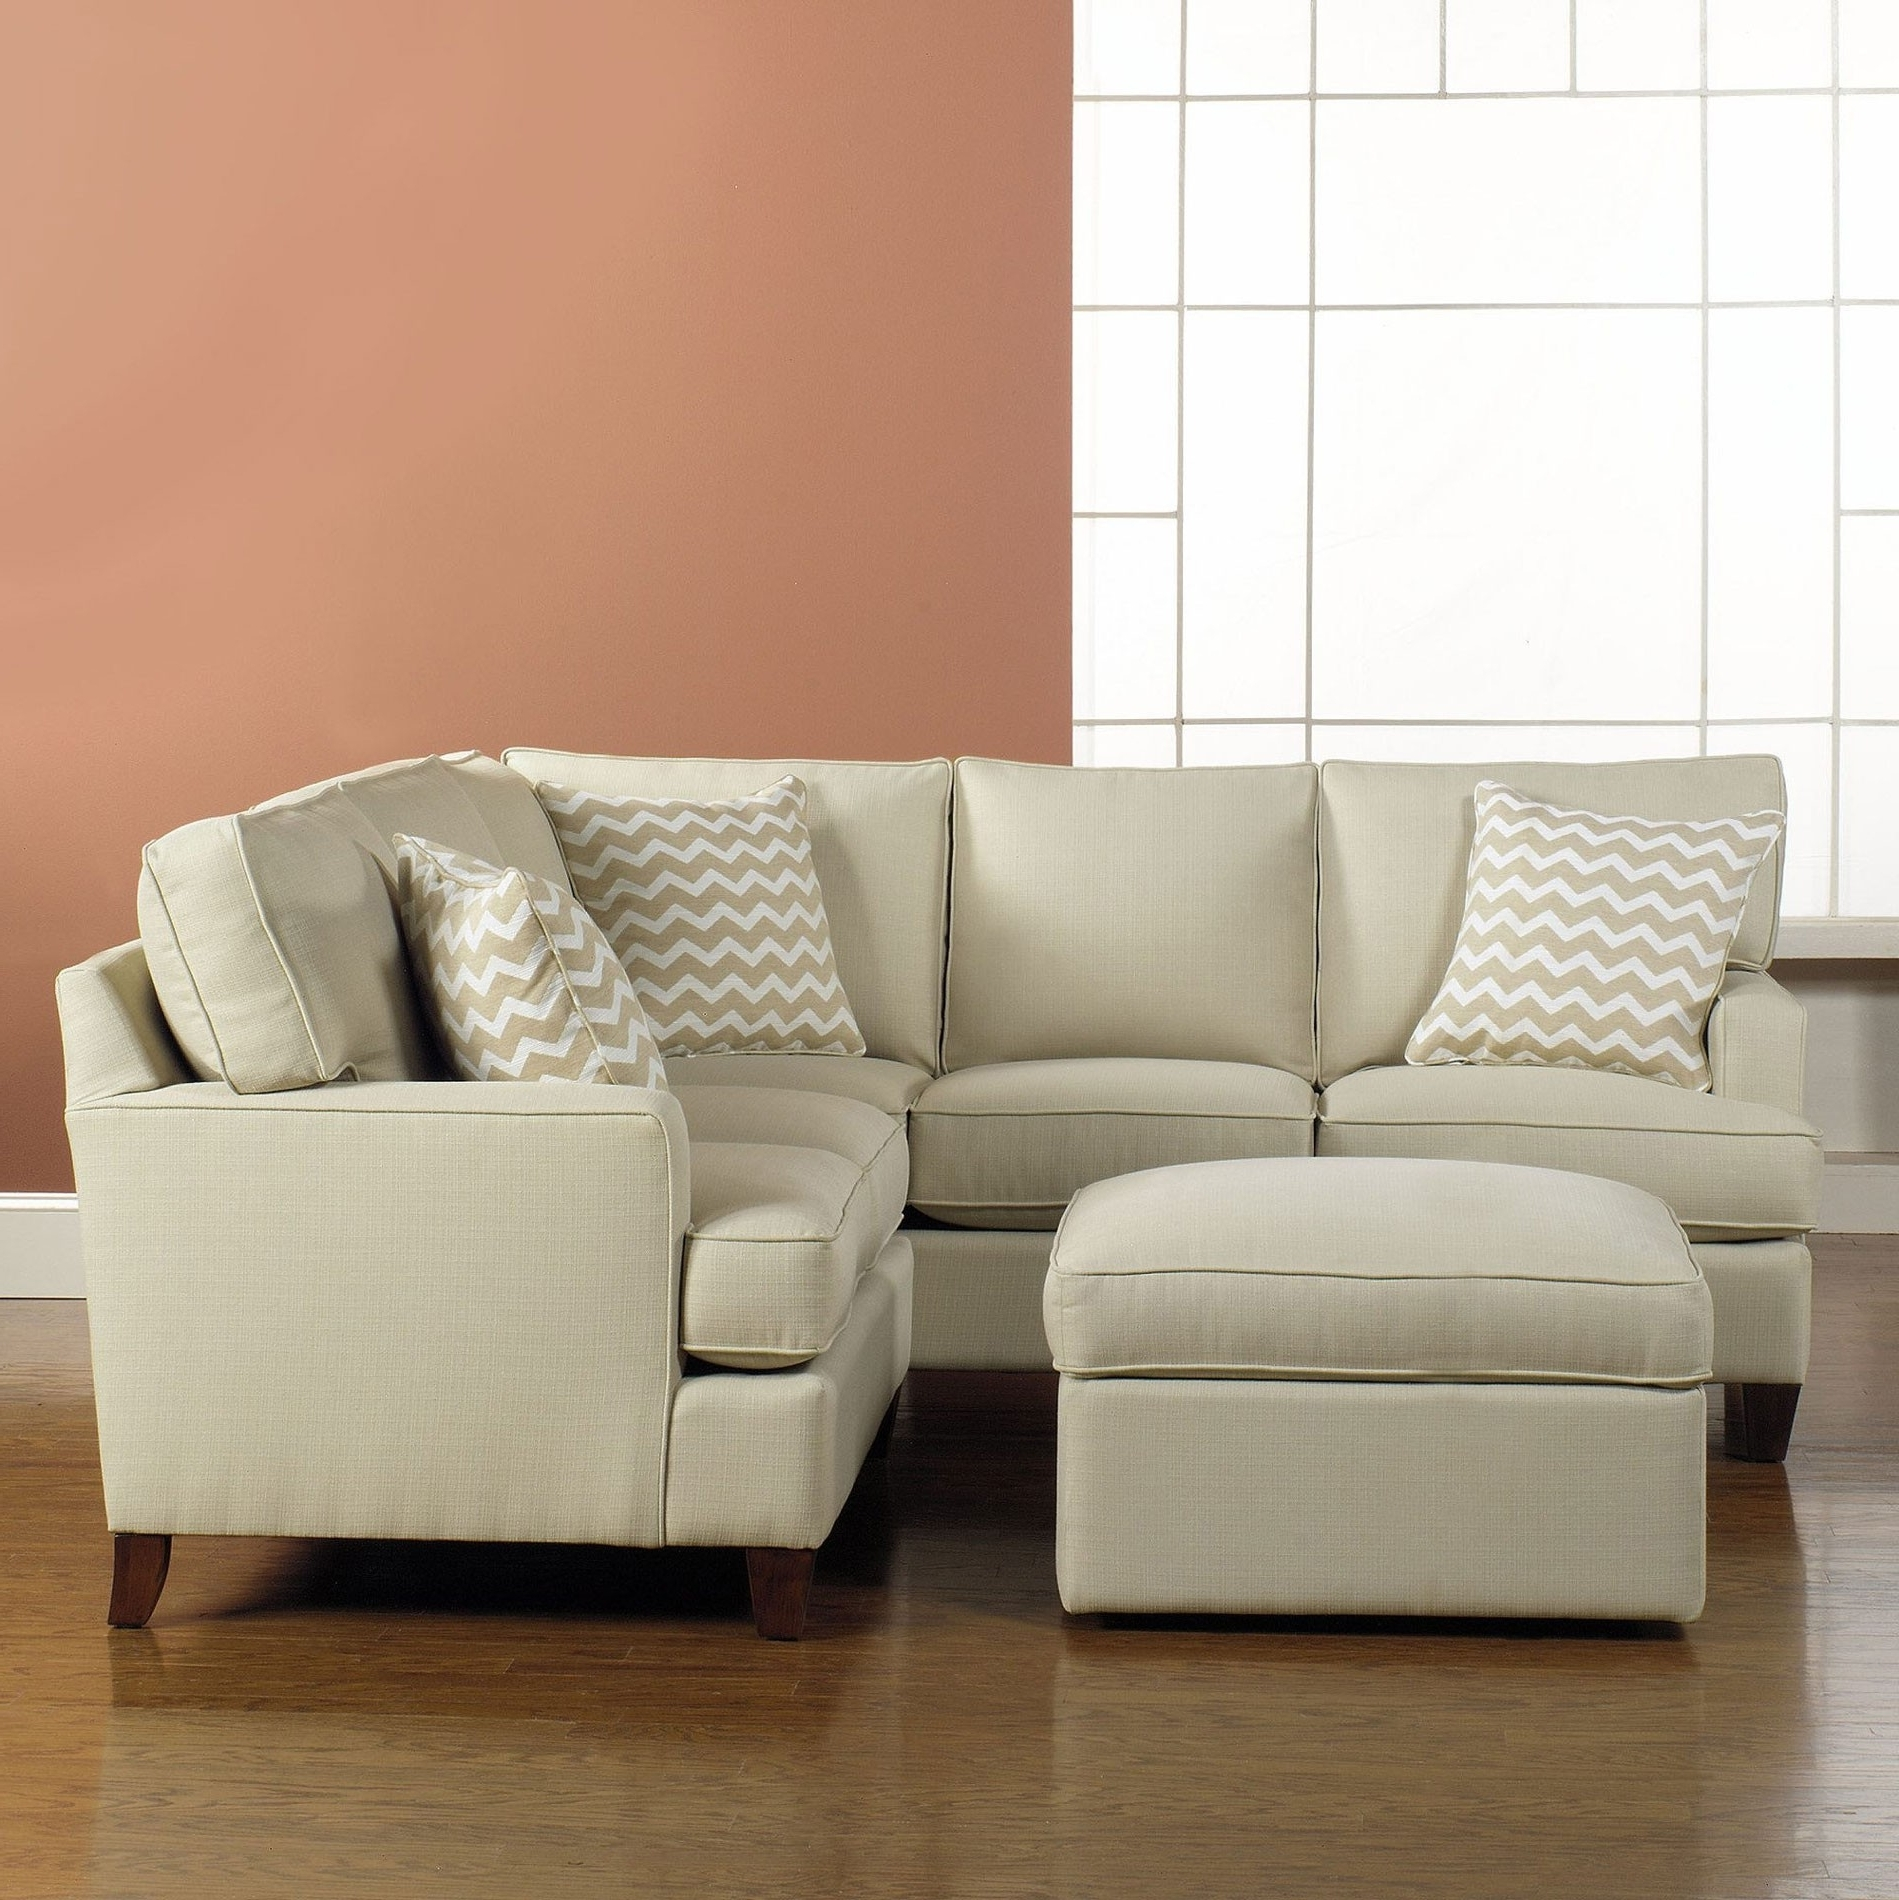 Small Scale Sofas Throughout Current Small Loveseats For Apartments Modern Furniture Small Spaces Small (View 5 of 15)